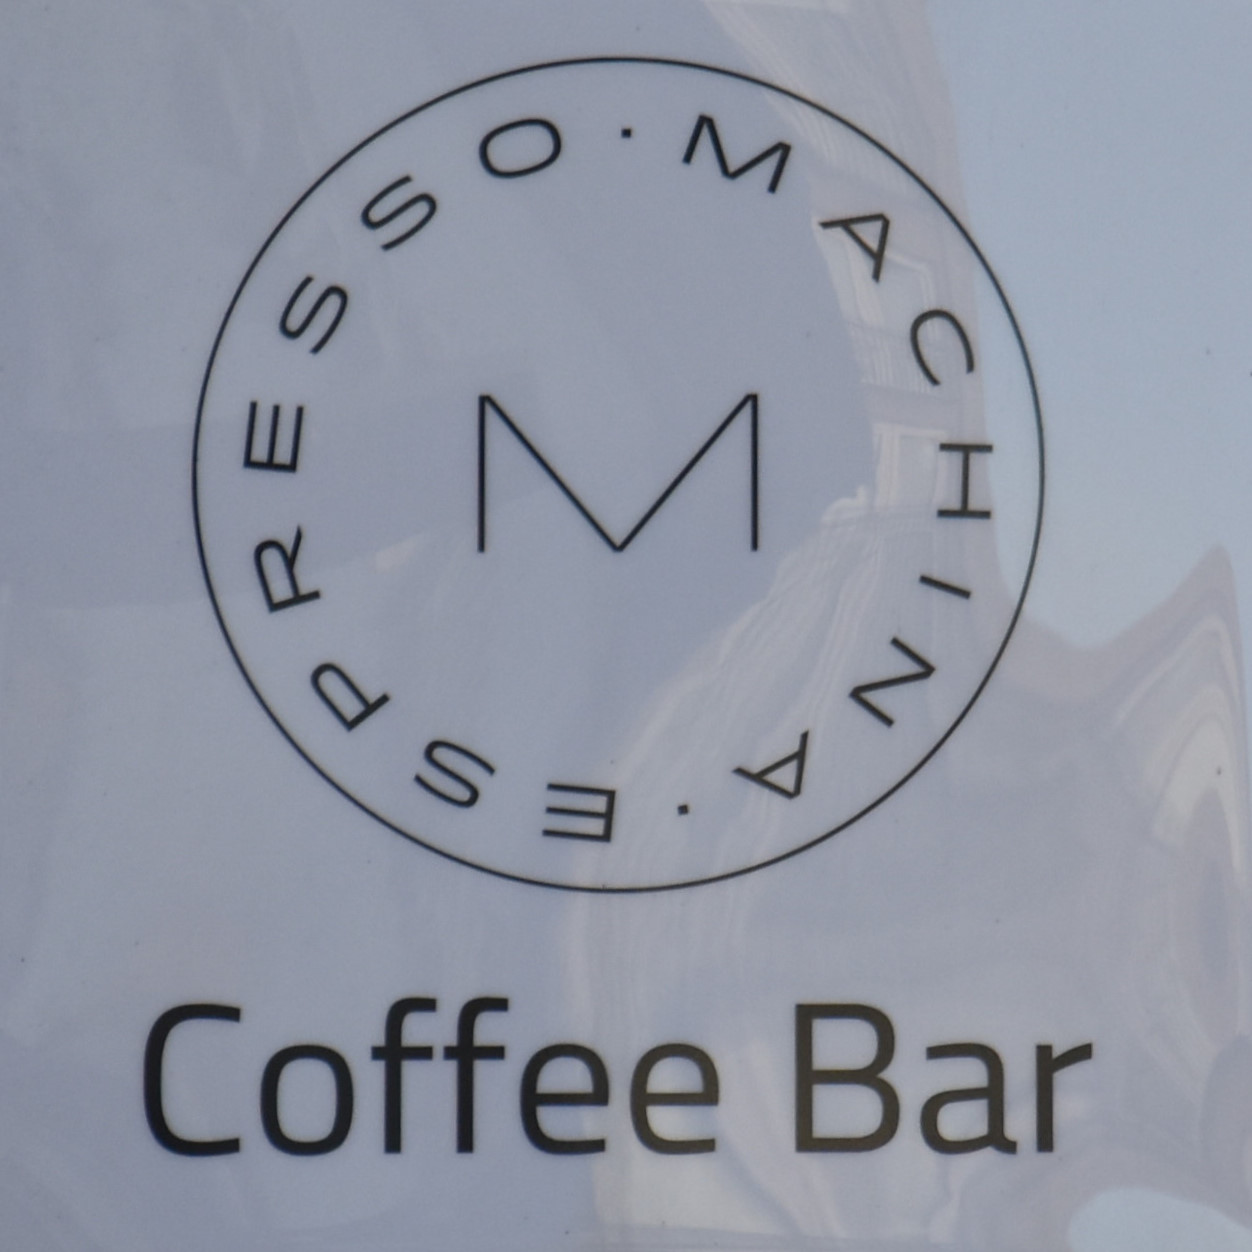 Machina Espresso Coffee Bar: detail from the sign outside the Nicolson Street branch